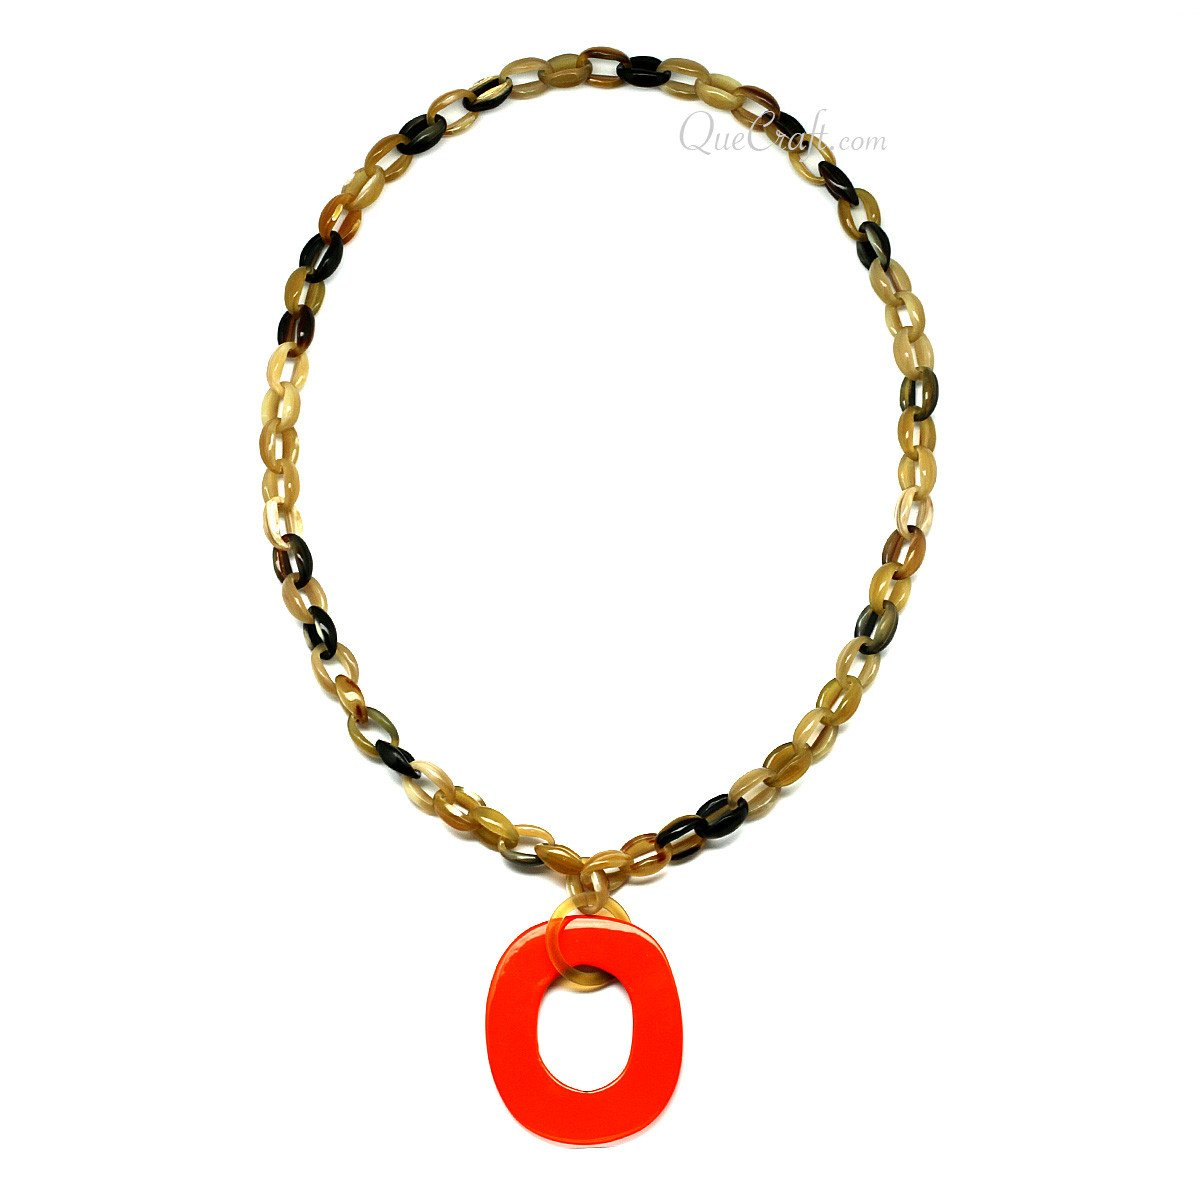 Horn & Lacquer Chain Necklace #10572 - HORN.JEWELRY